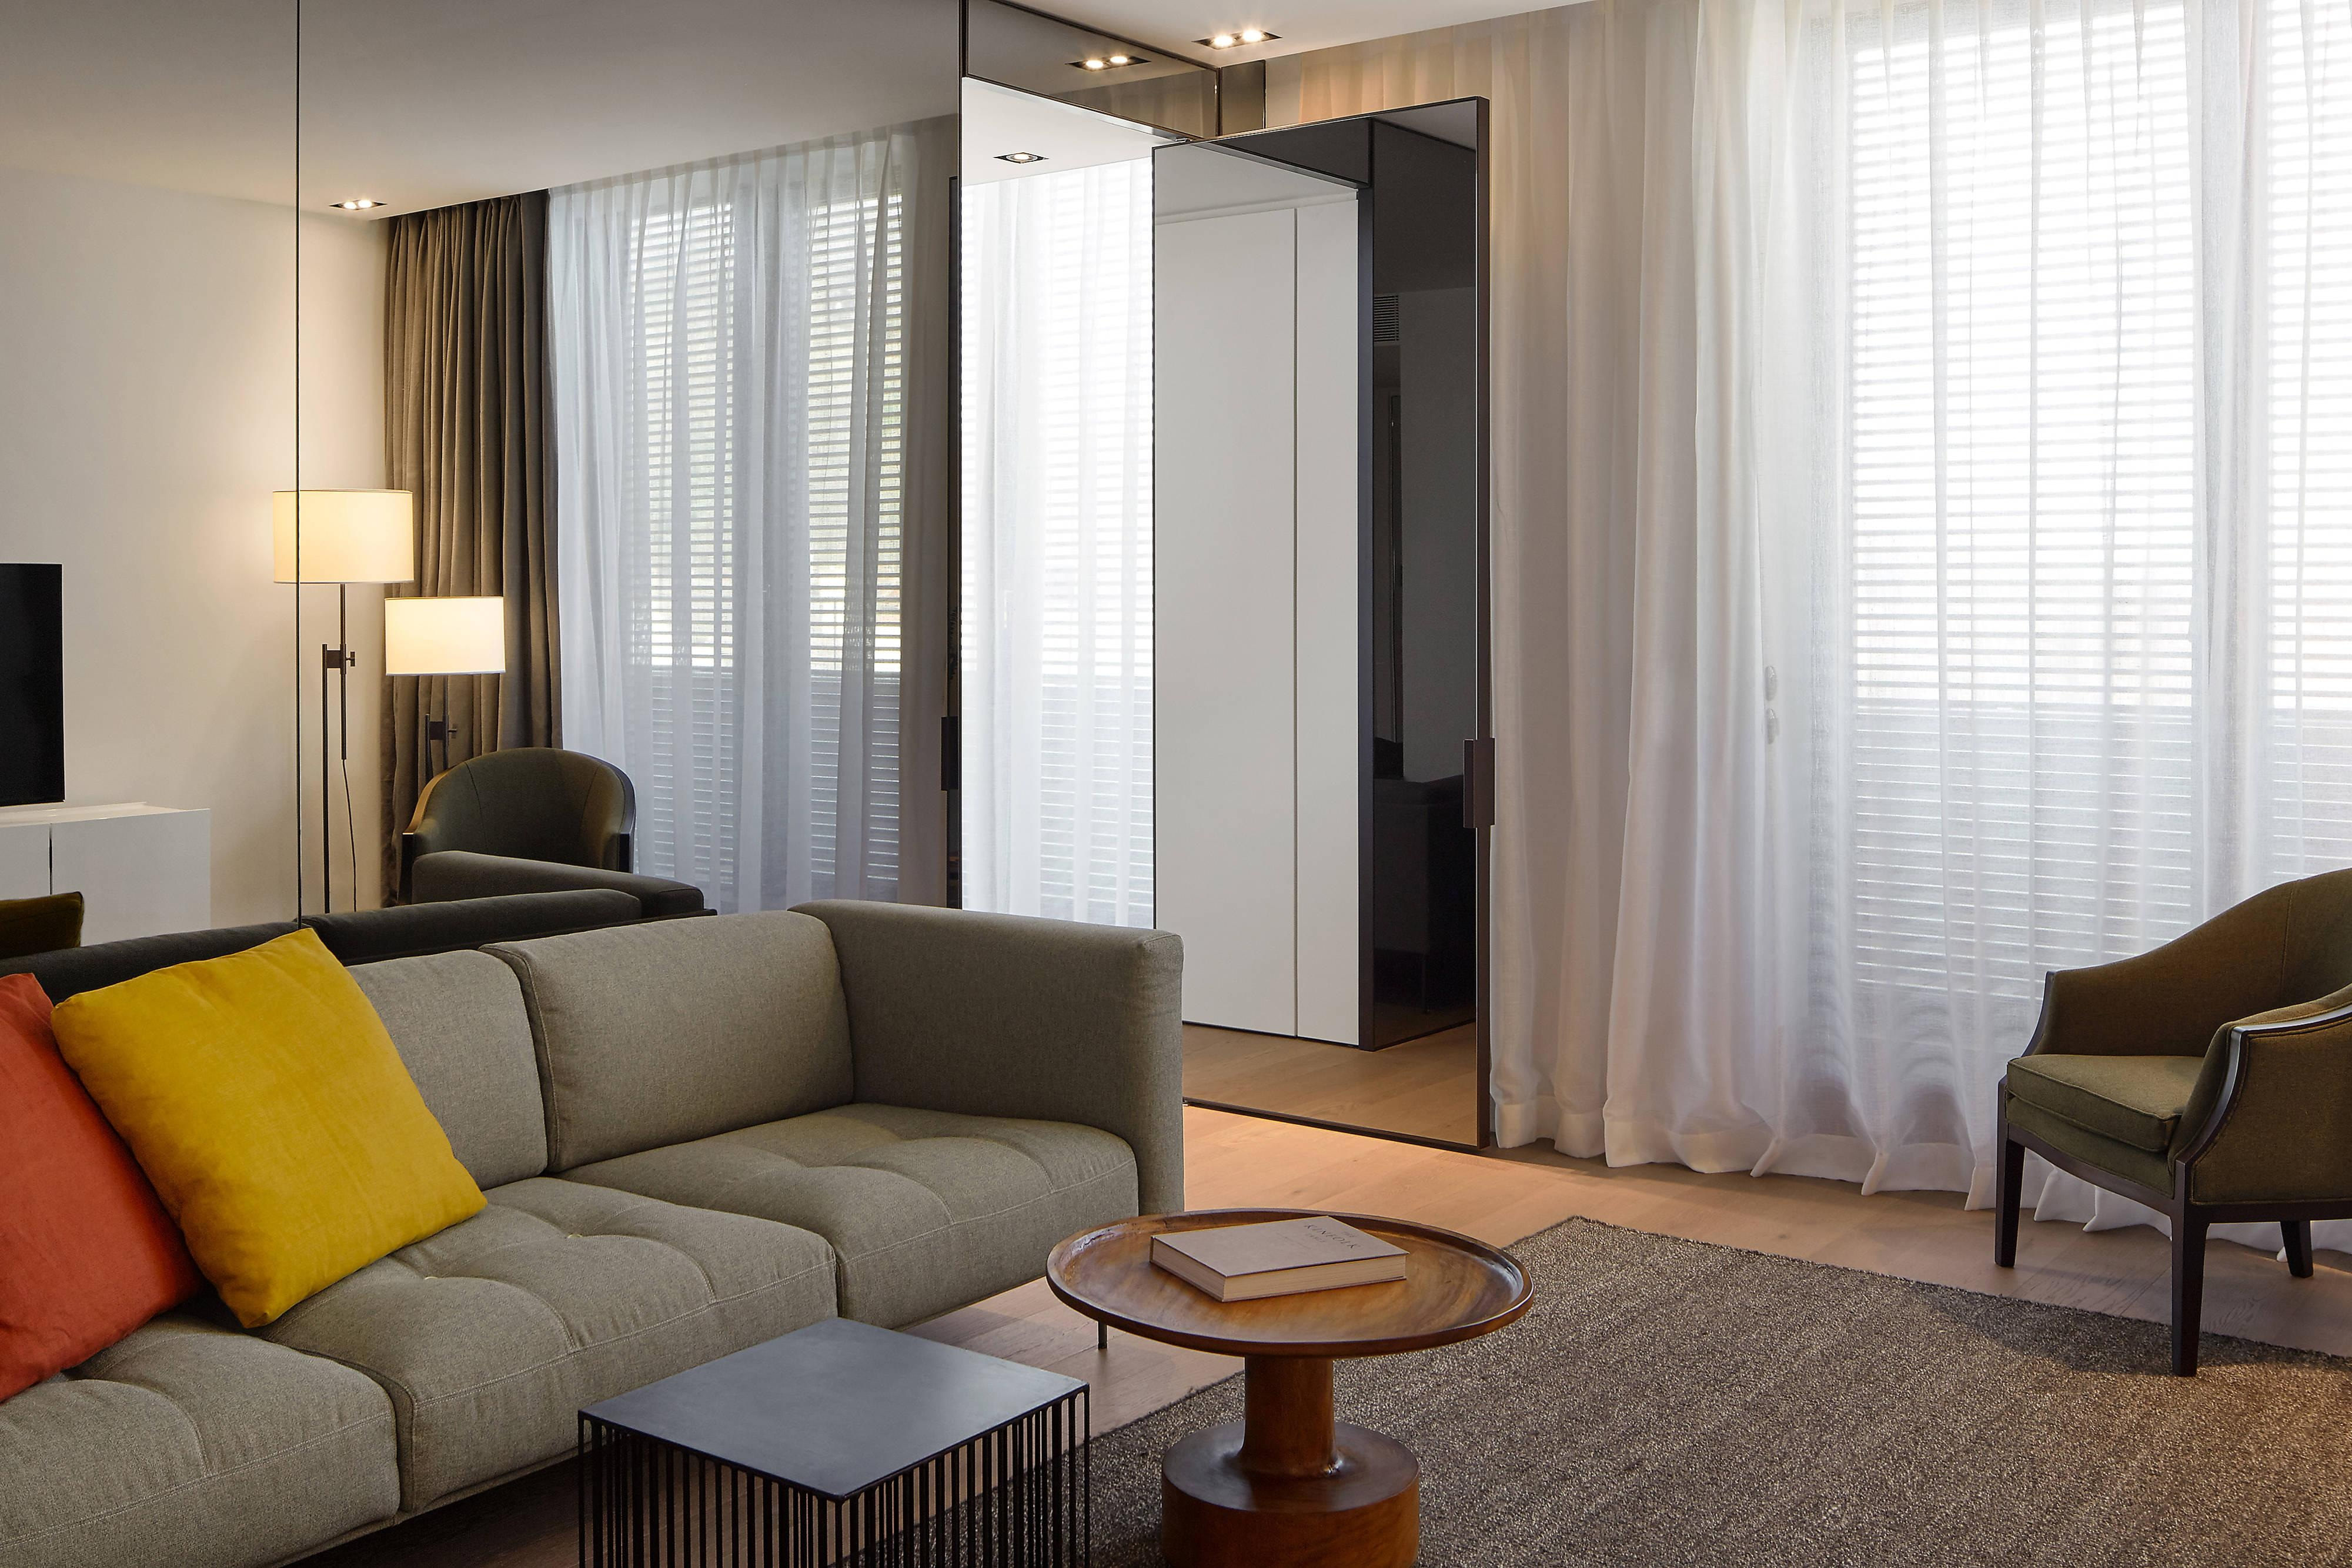 roomers baden baden autograph collection hotel amenities hotel room highlights. Black Bedroom Furniture Sets. Home Design Ideas